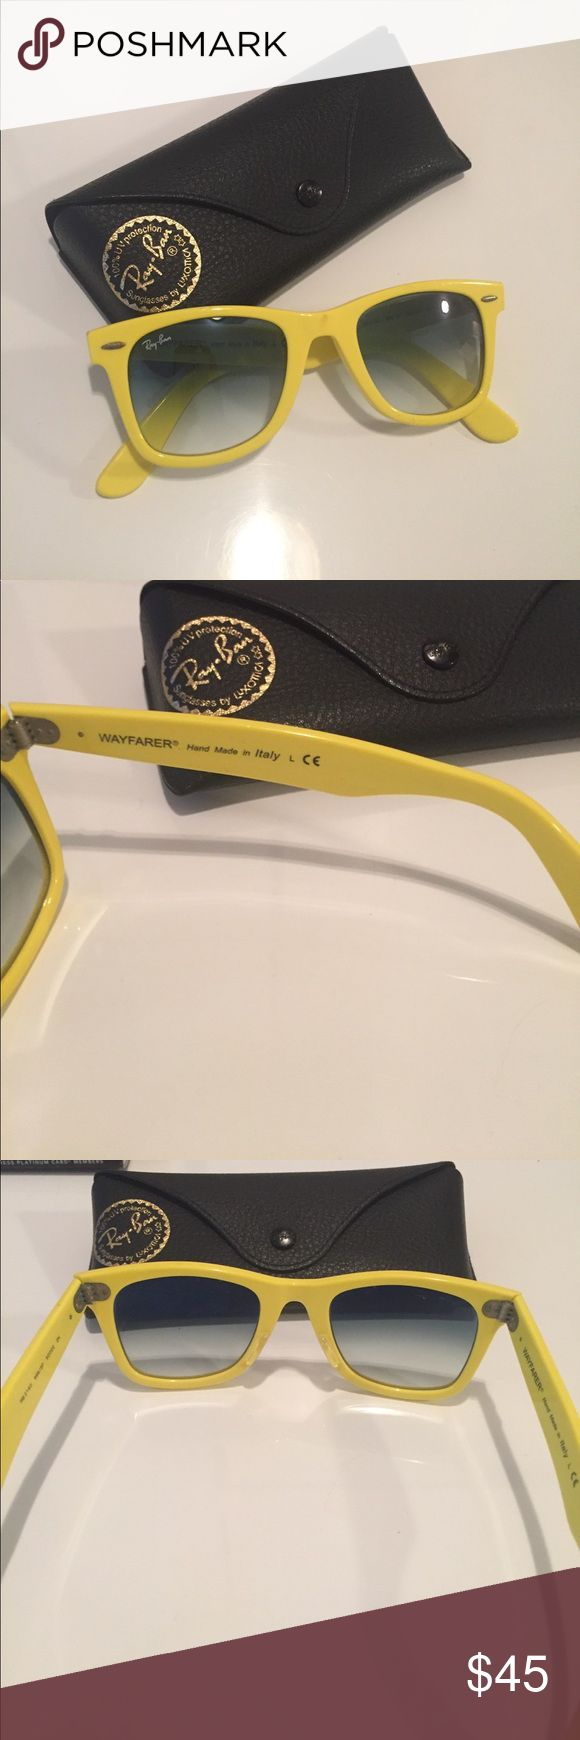 Authentic Ray Ban Wayfarer Sunglasses! Yellow Wayfarer sunglasses! Unisex for both men and women. A few imperfections, in good condition Ray-Ban Accessories Sunglasses